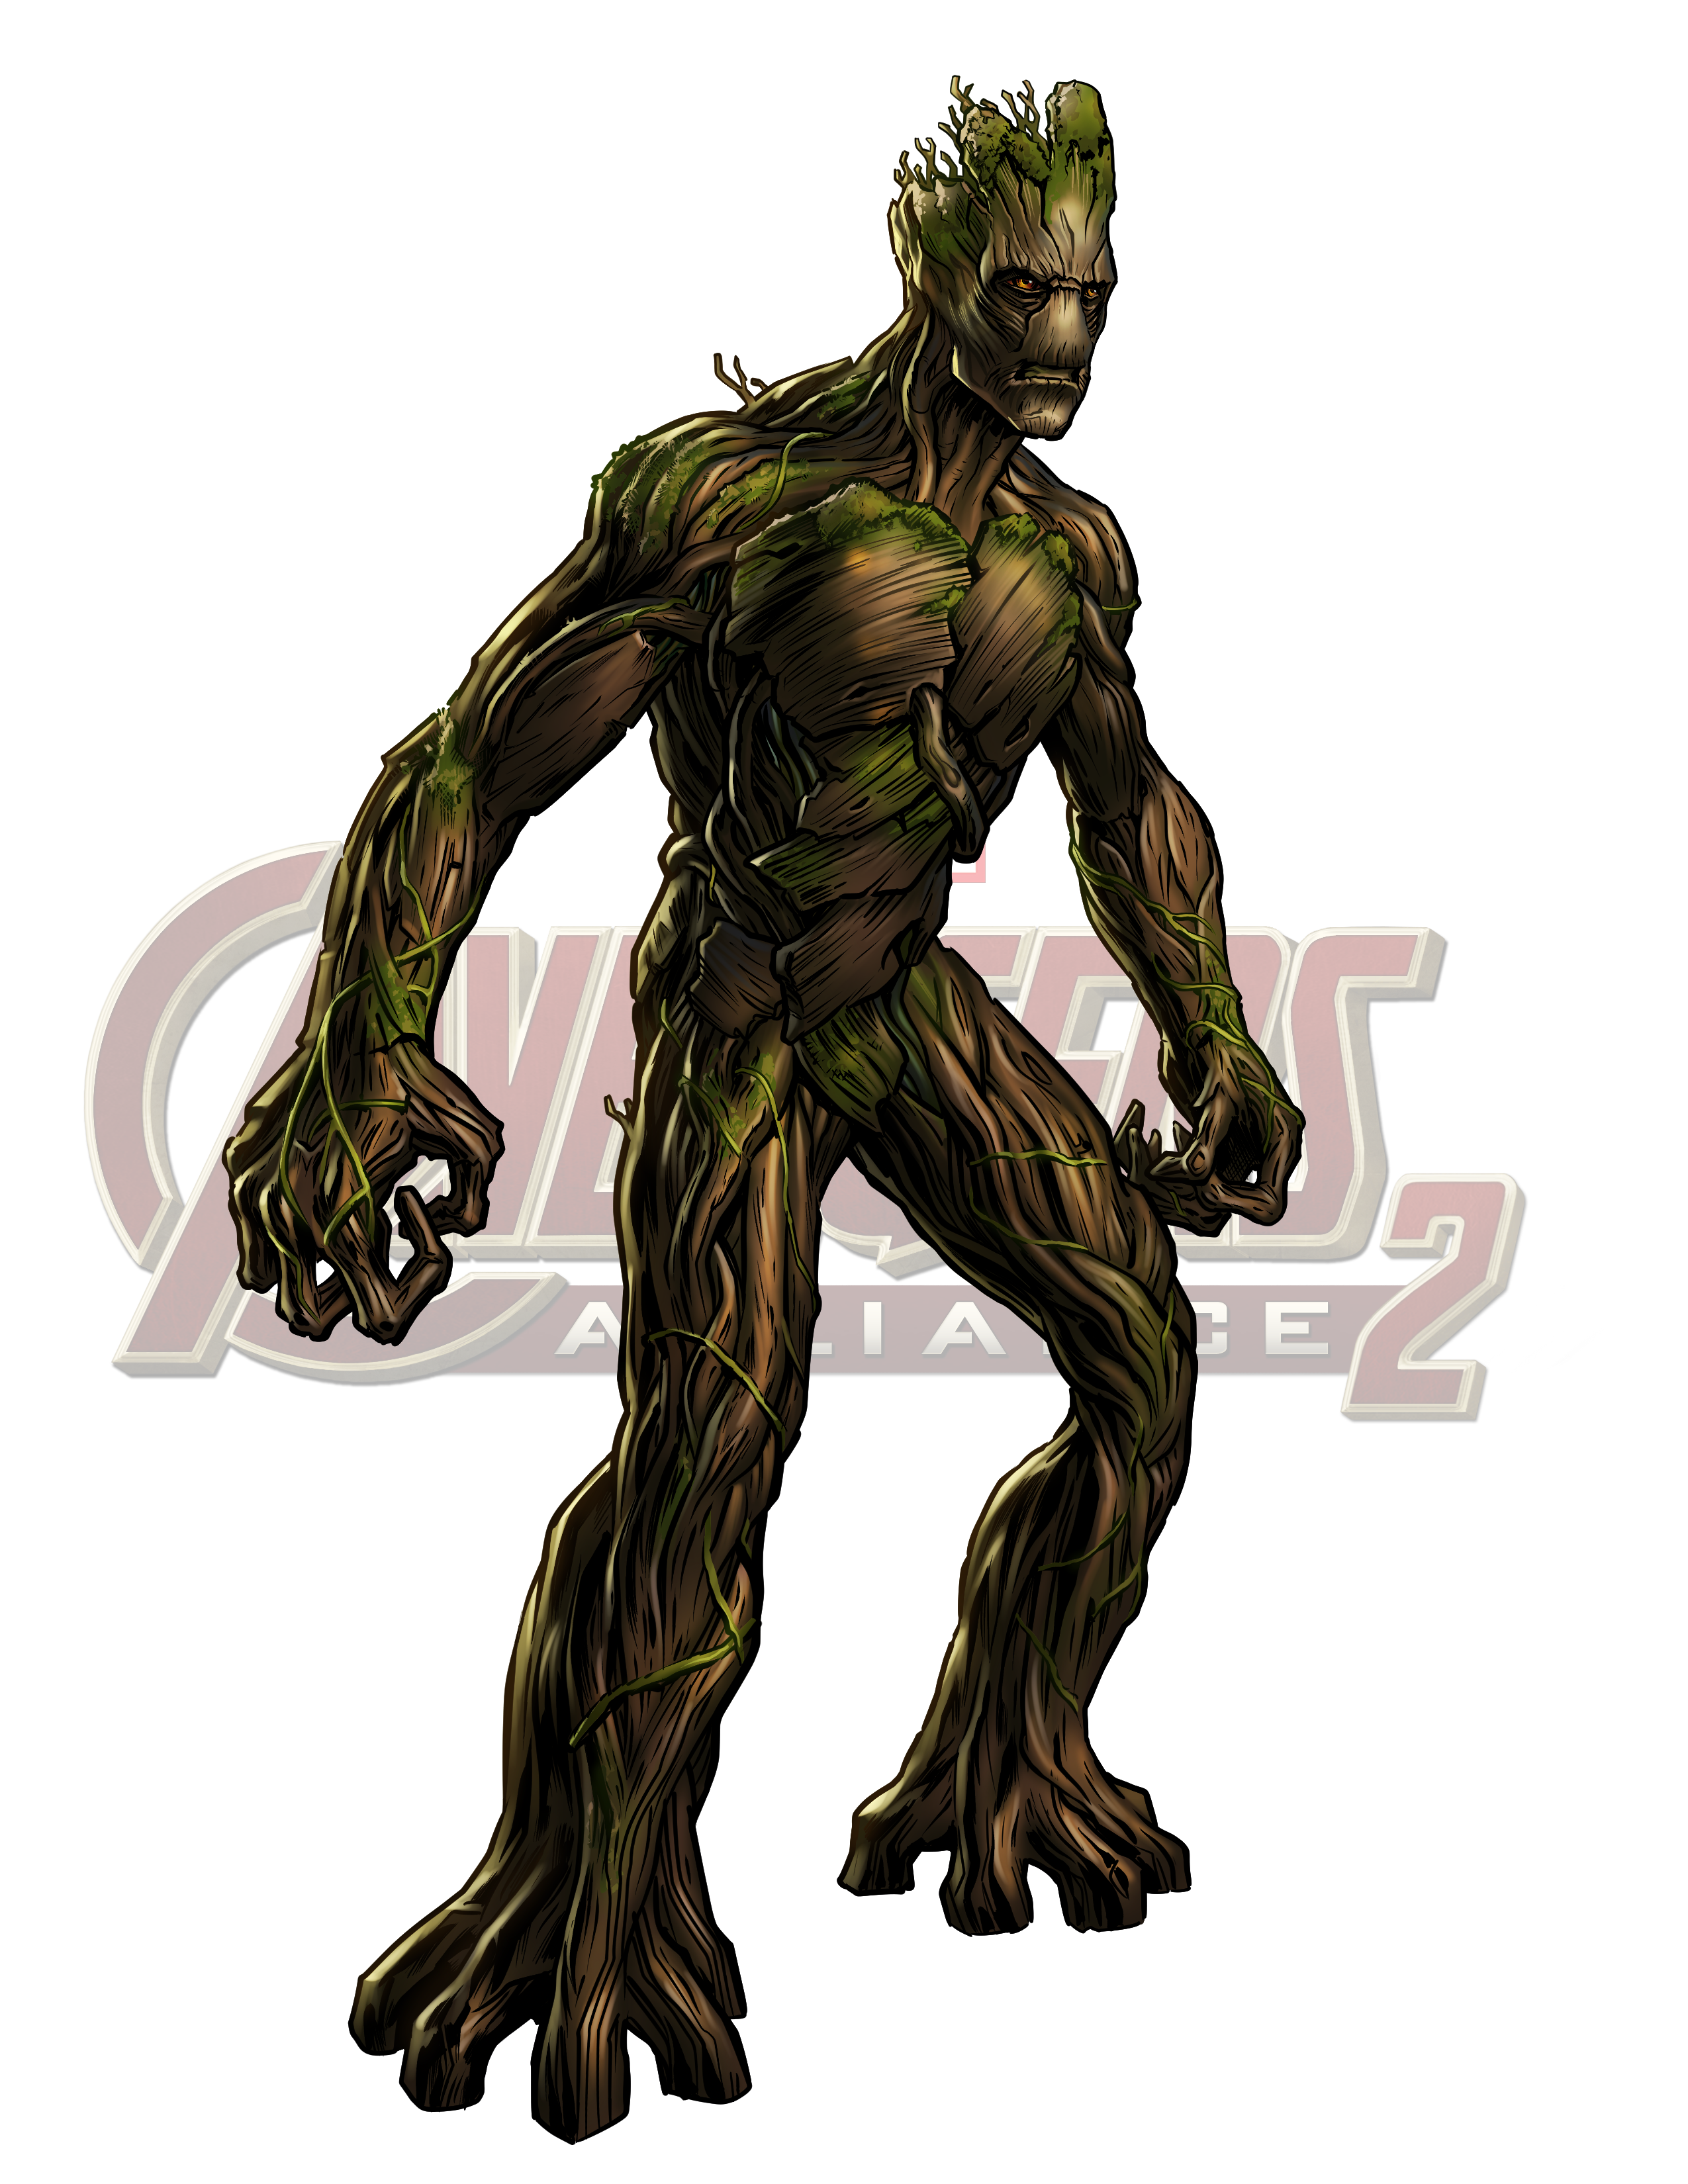 Alliance Rocket Character Fictional Groot Figurine Raccoon PNG Image